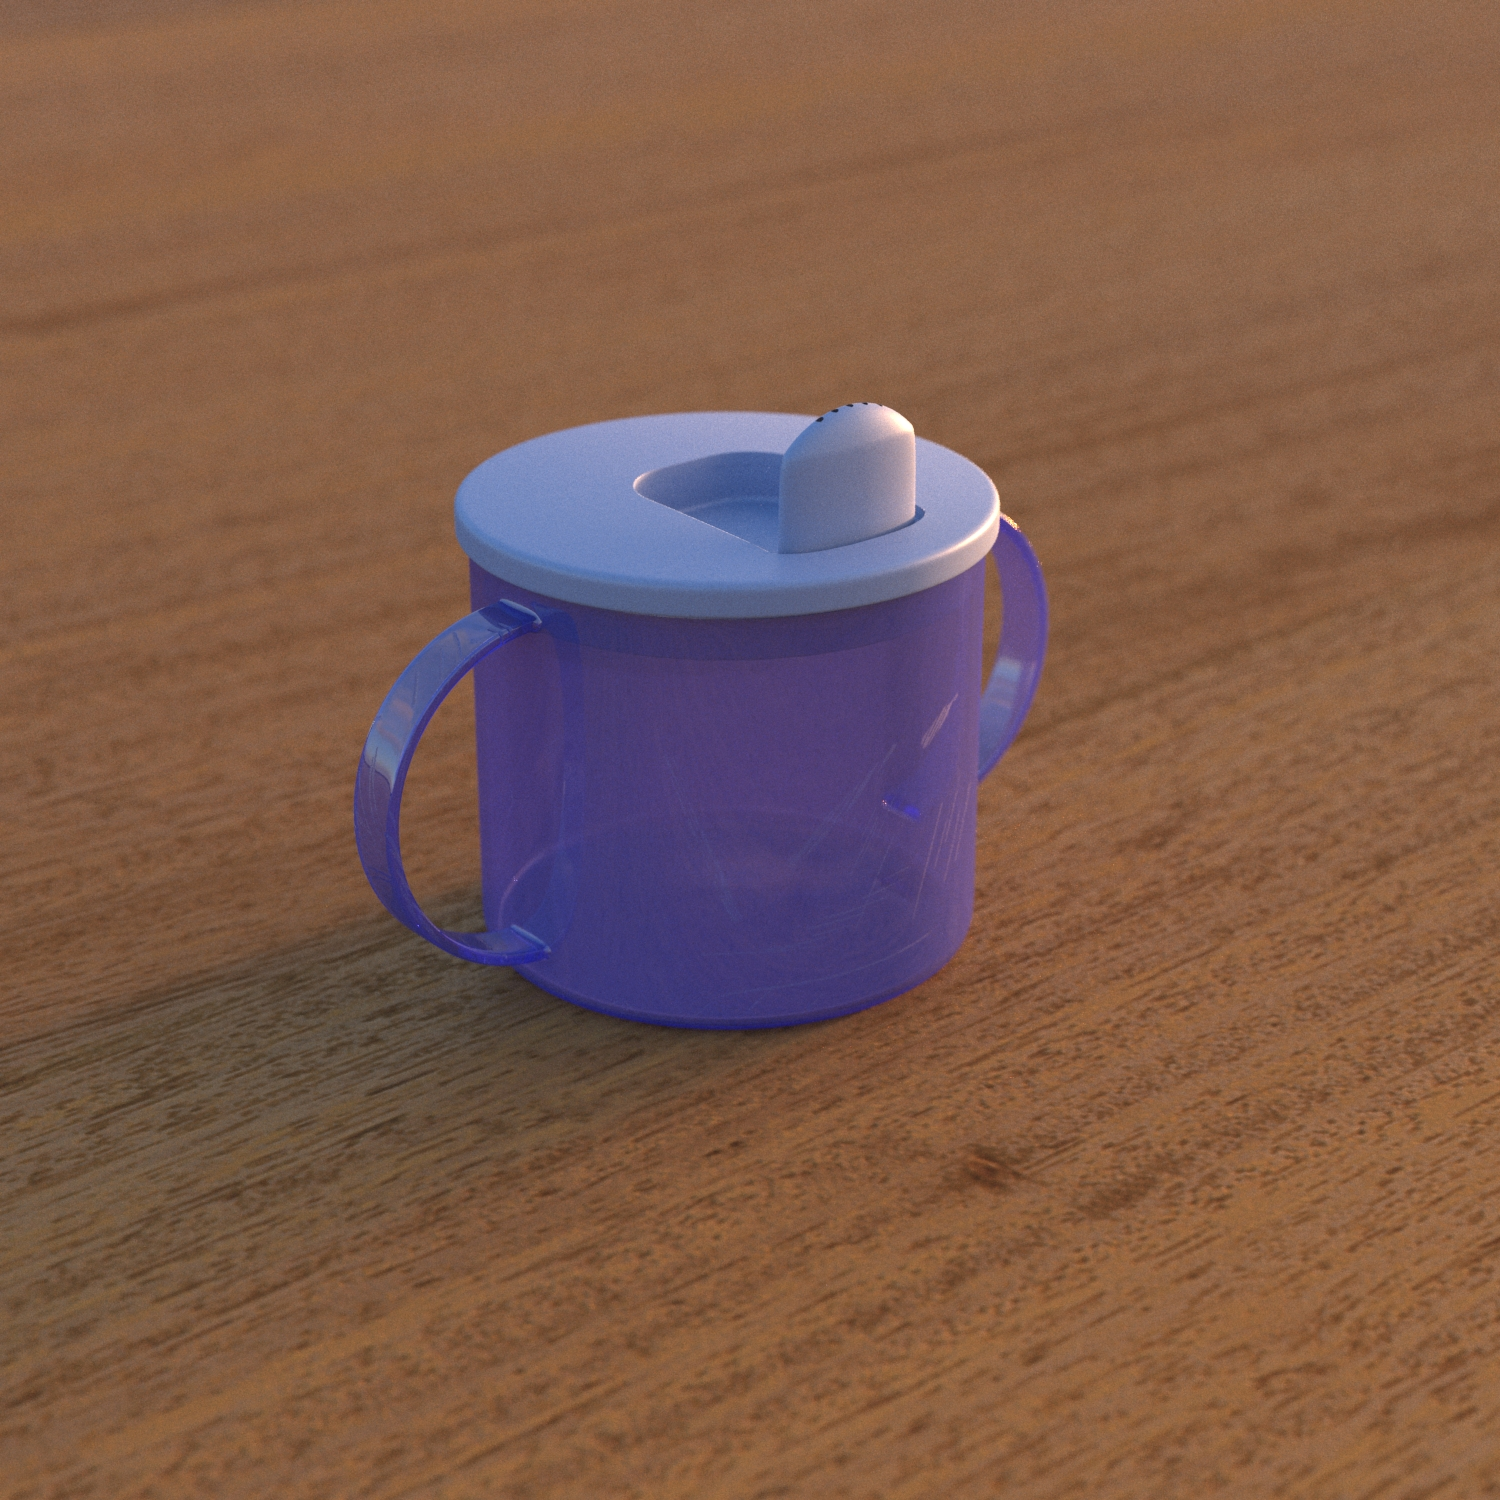 3D model of a toddler's cup